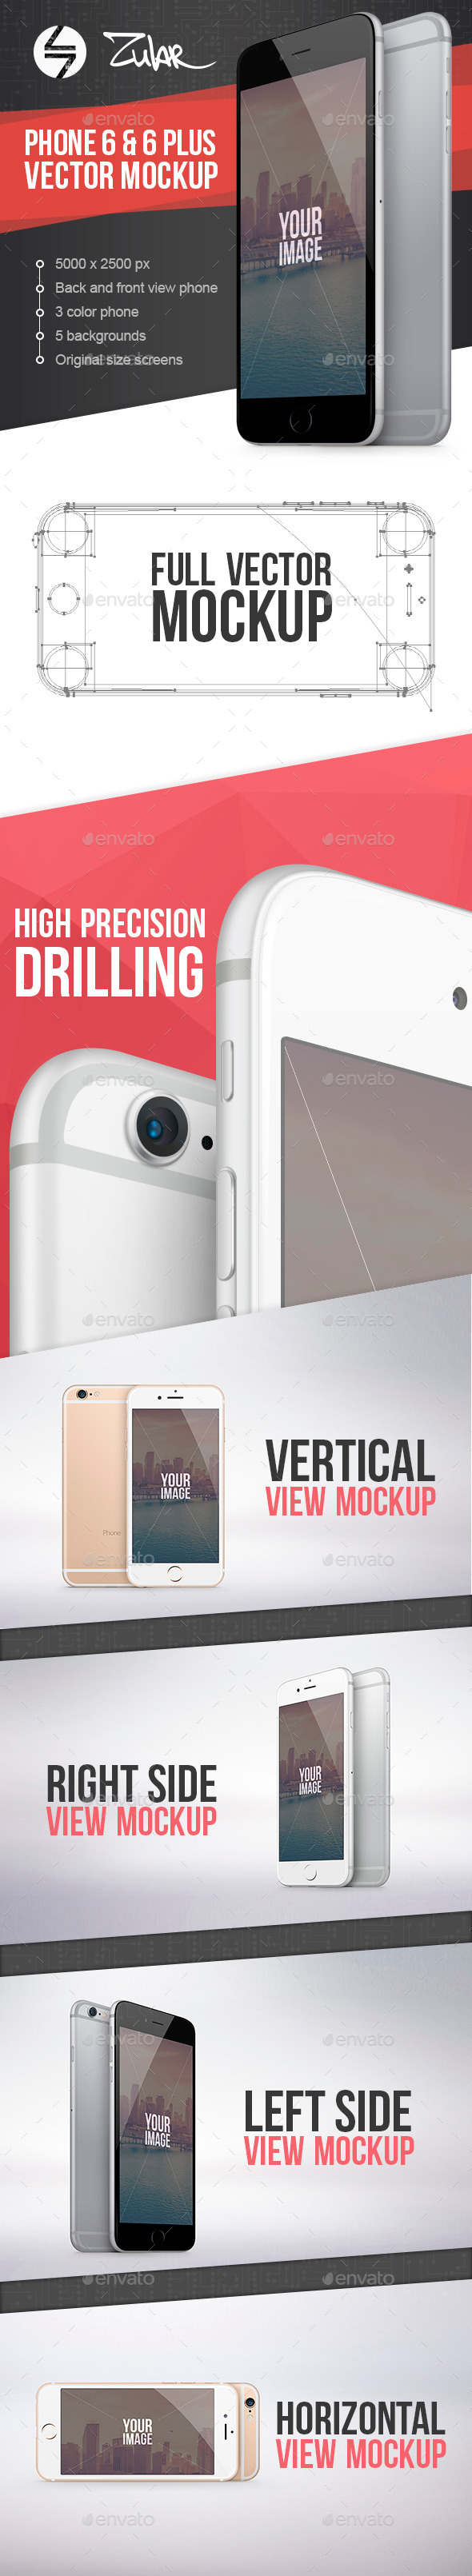 GraphicRiver Phone 6 & 6 Plus Vector Mockup 8962062